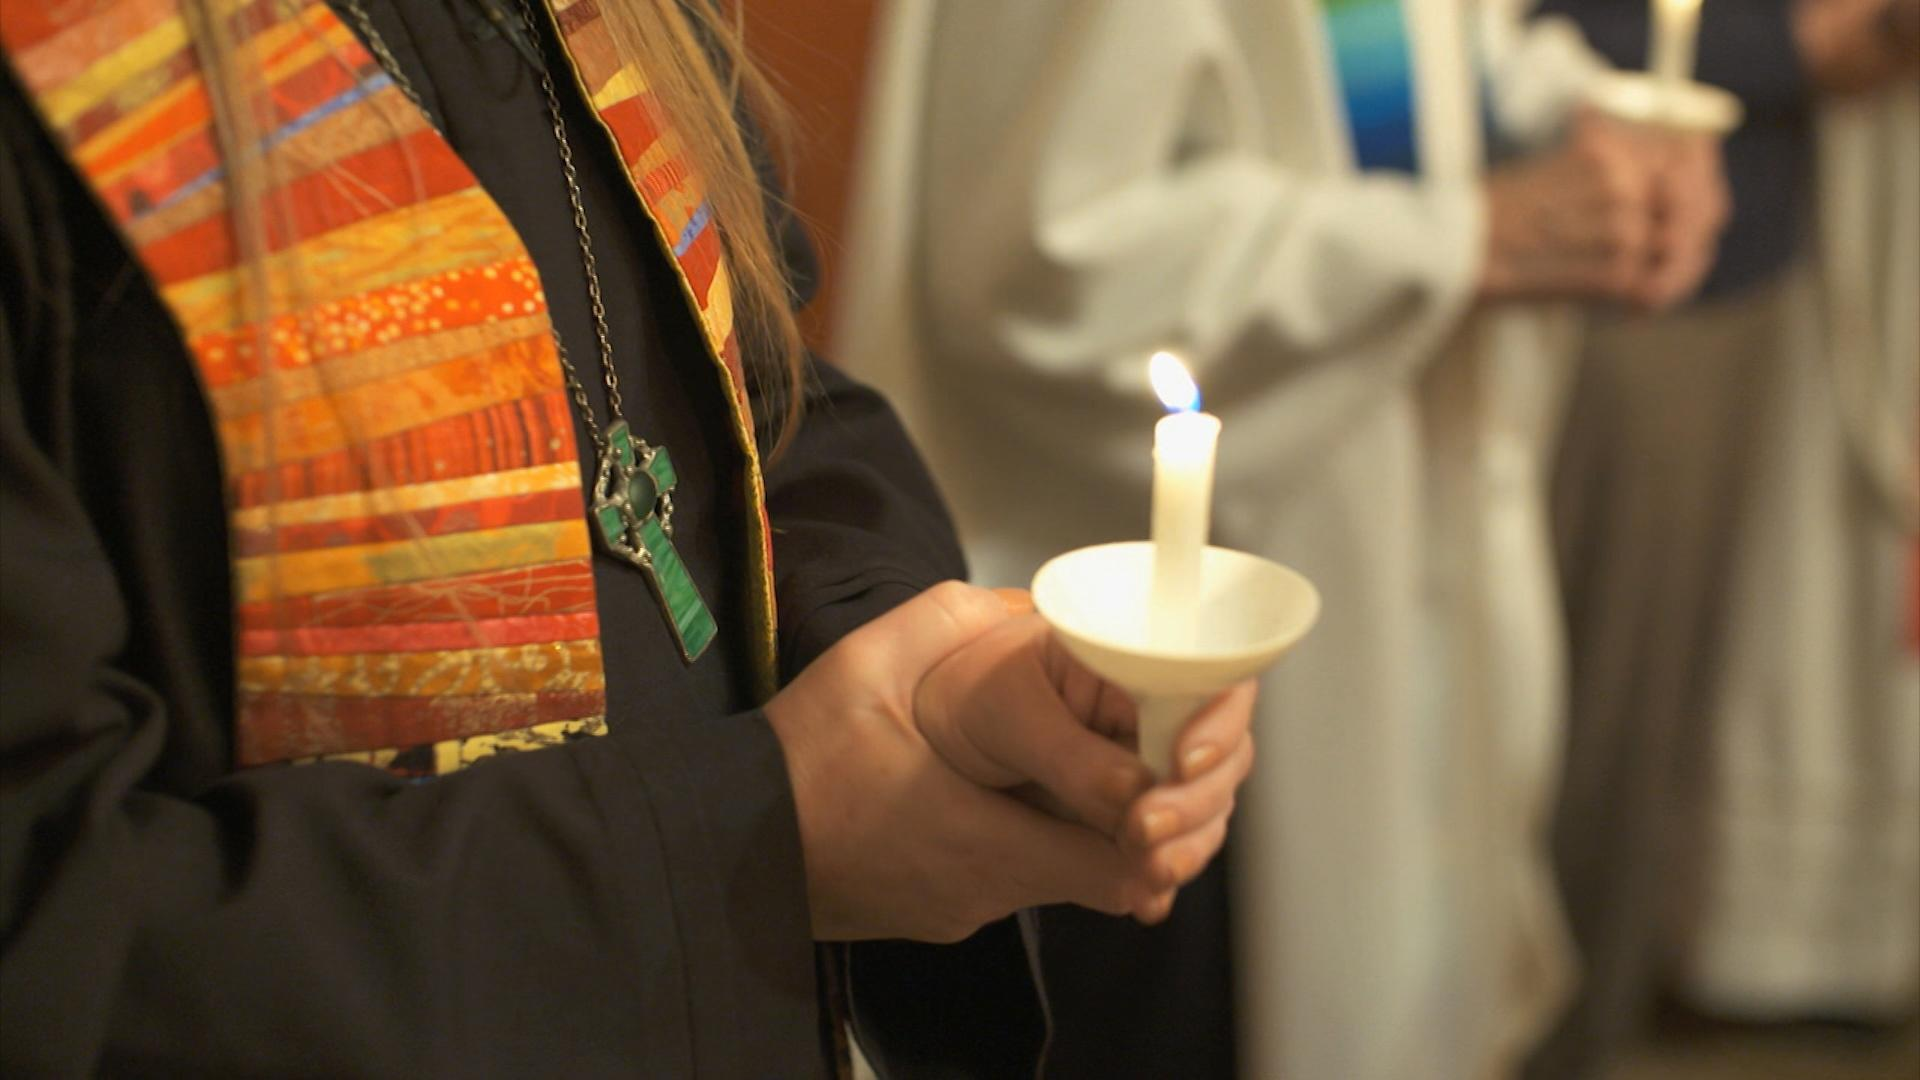 Sanctuary Movement; Anniversary of Protestant Reformation